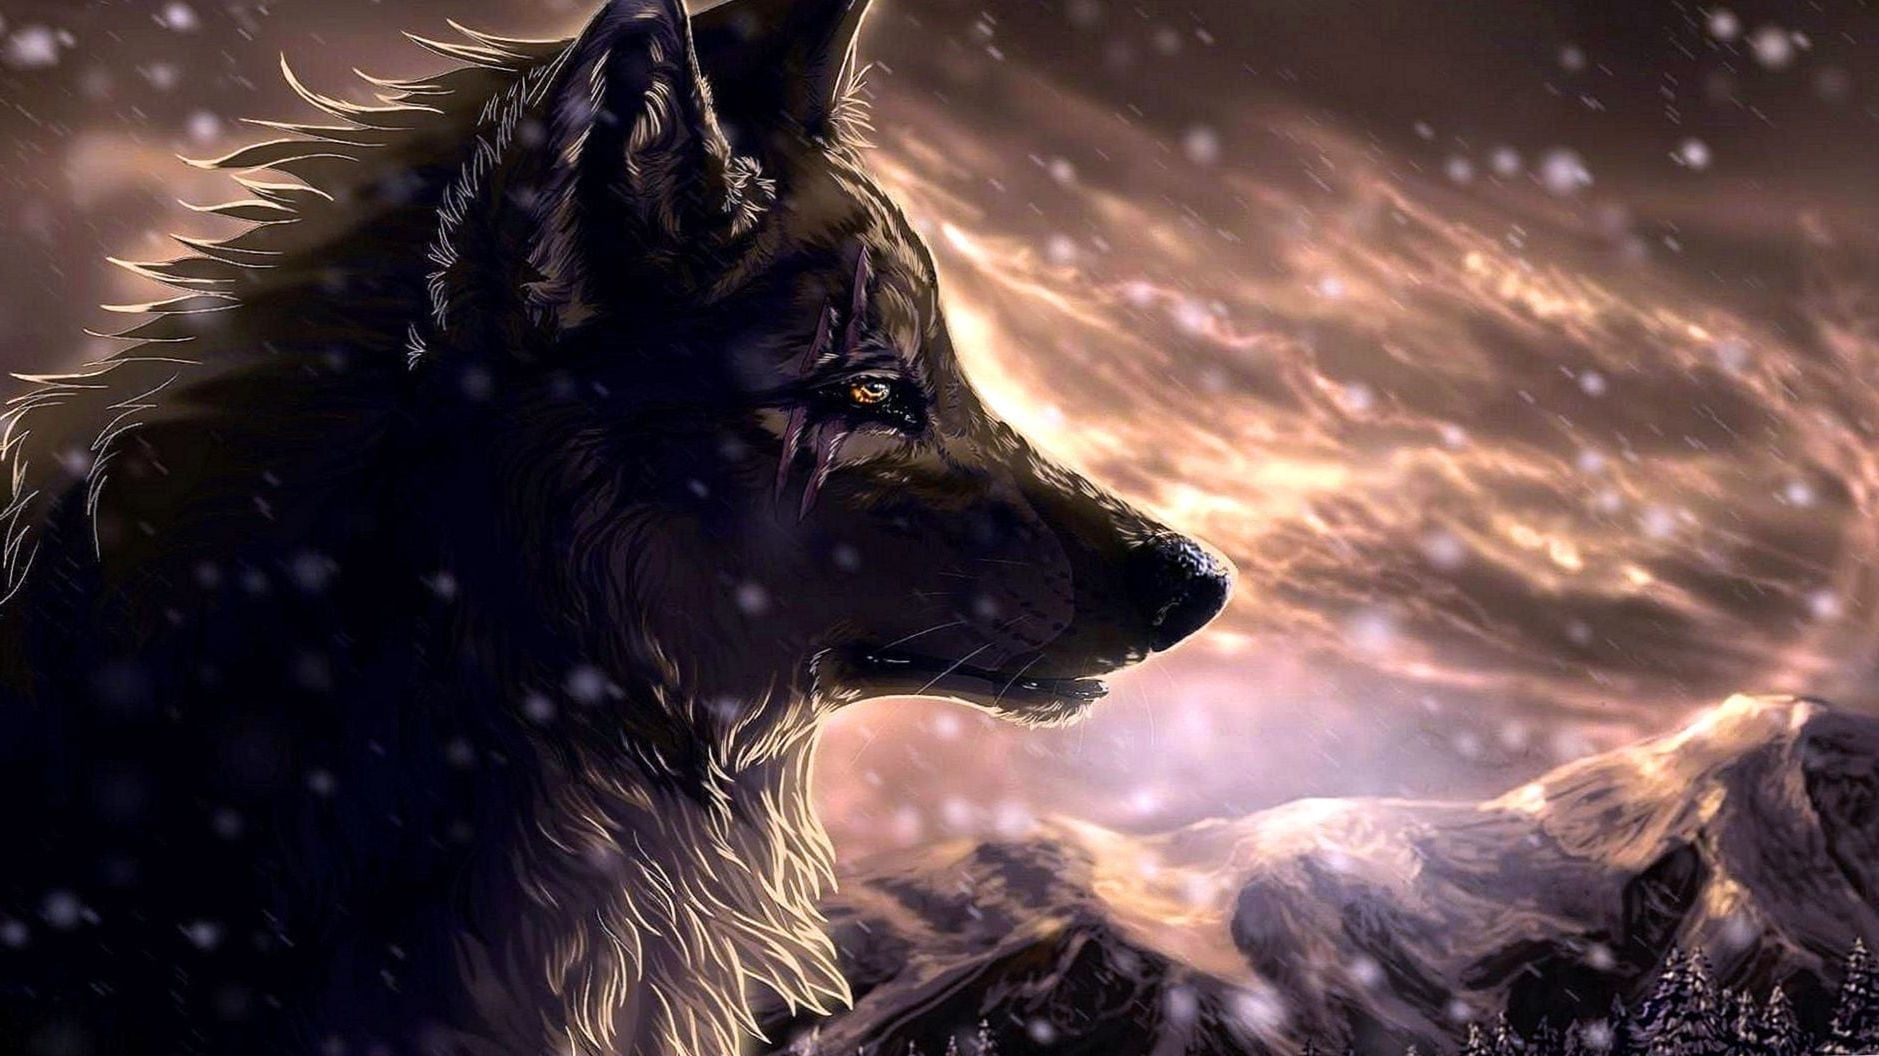 Anime Wolf Wallpapers Full Hd Anime Wolf Wallpapers Full Hd Wolf Wallpaper Wolf Background Anime Wolf